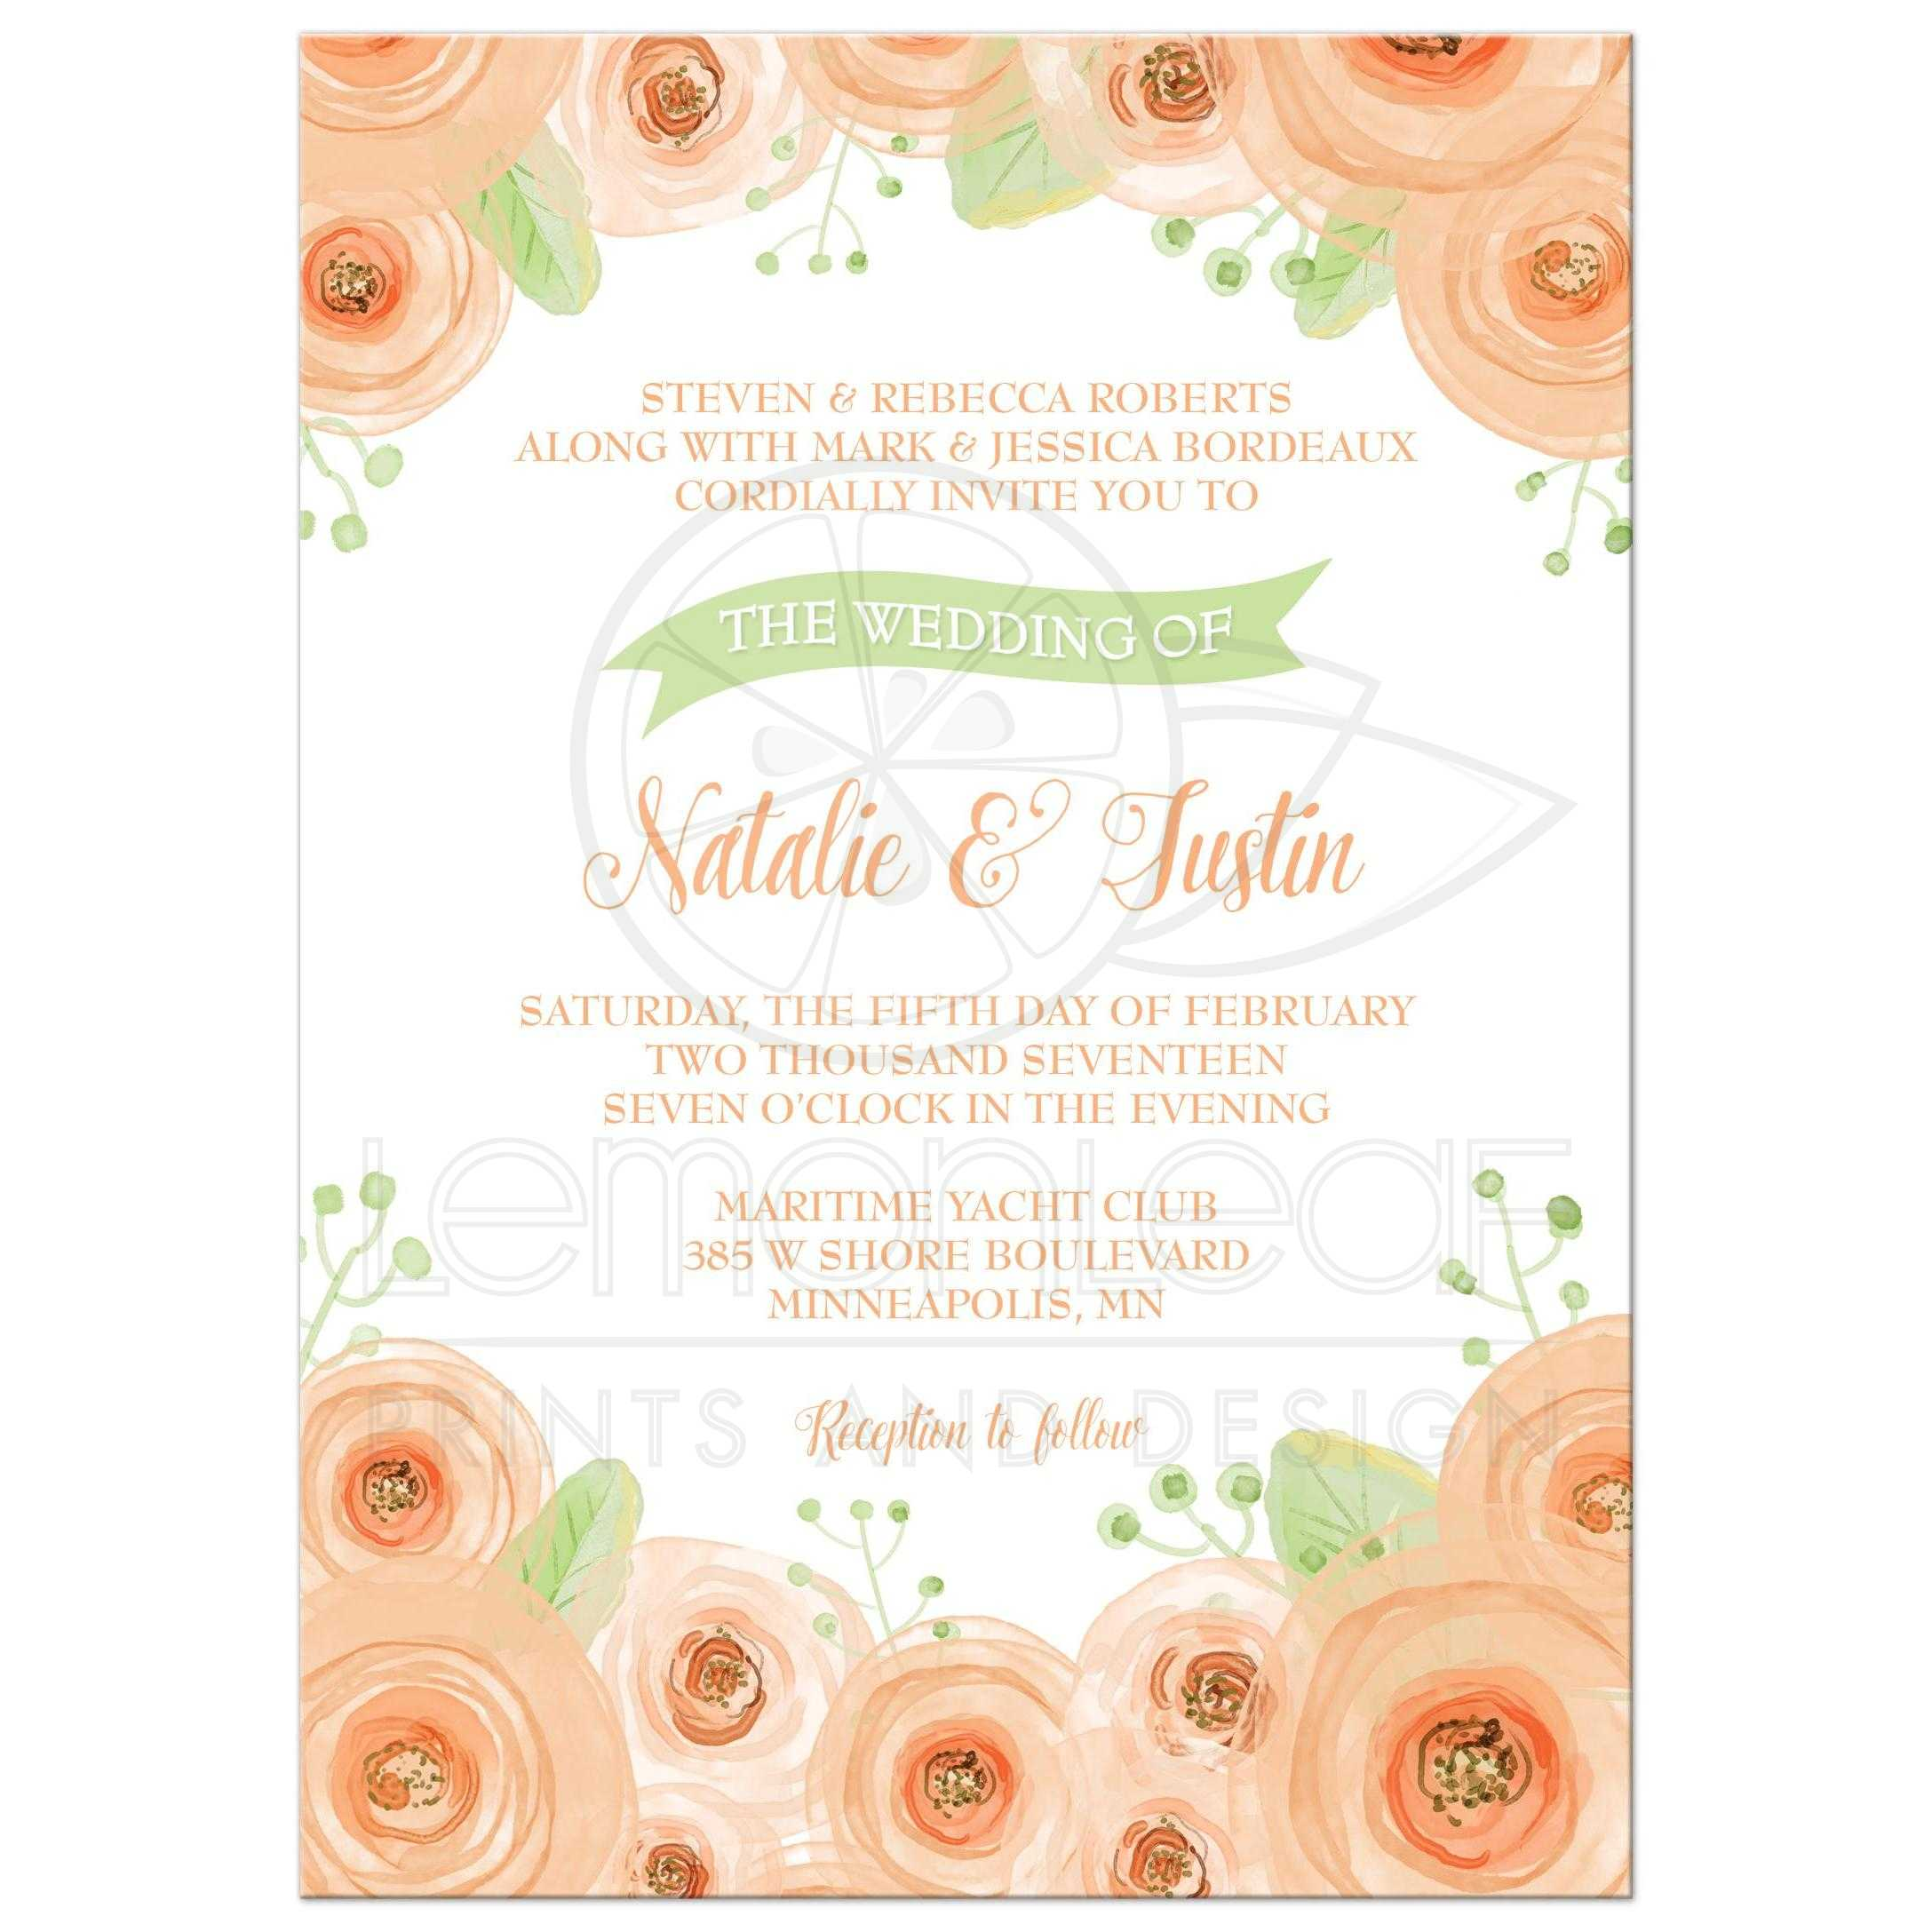 Wedding Invitation - Peach and green floral watercolor